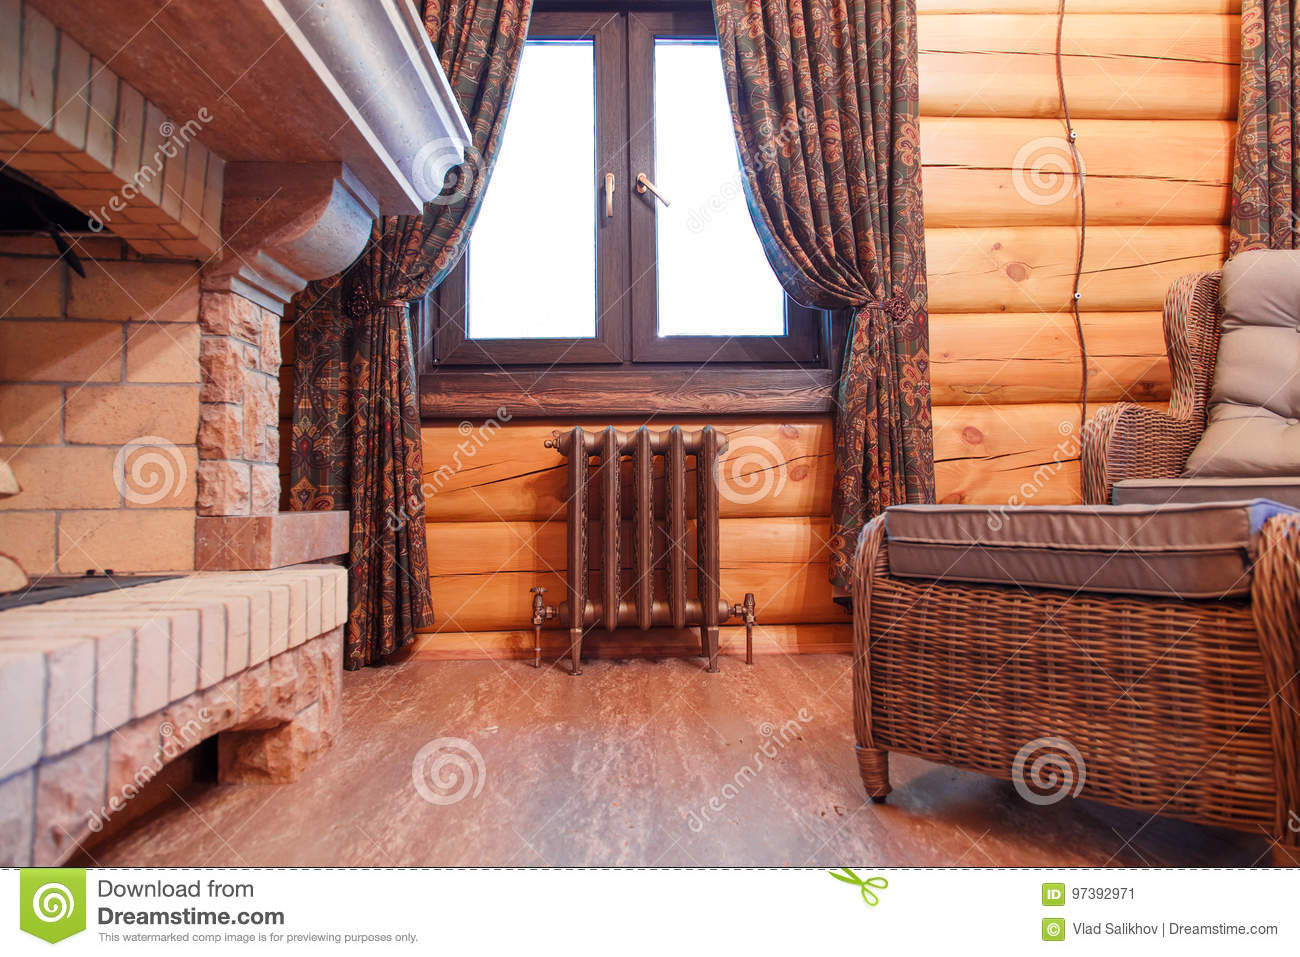 Interior Of A Chimney Hall In A Wooden House With A Cast Iron Retro Radiator Under The Window Stock Image Image Of Decorative Retro 97392971